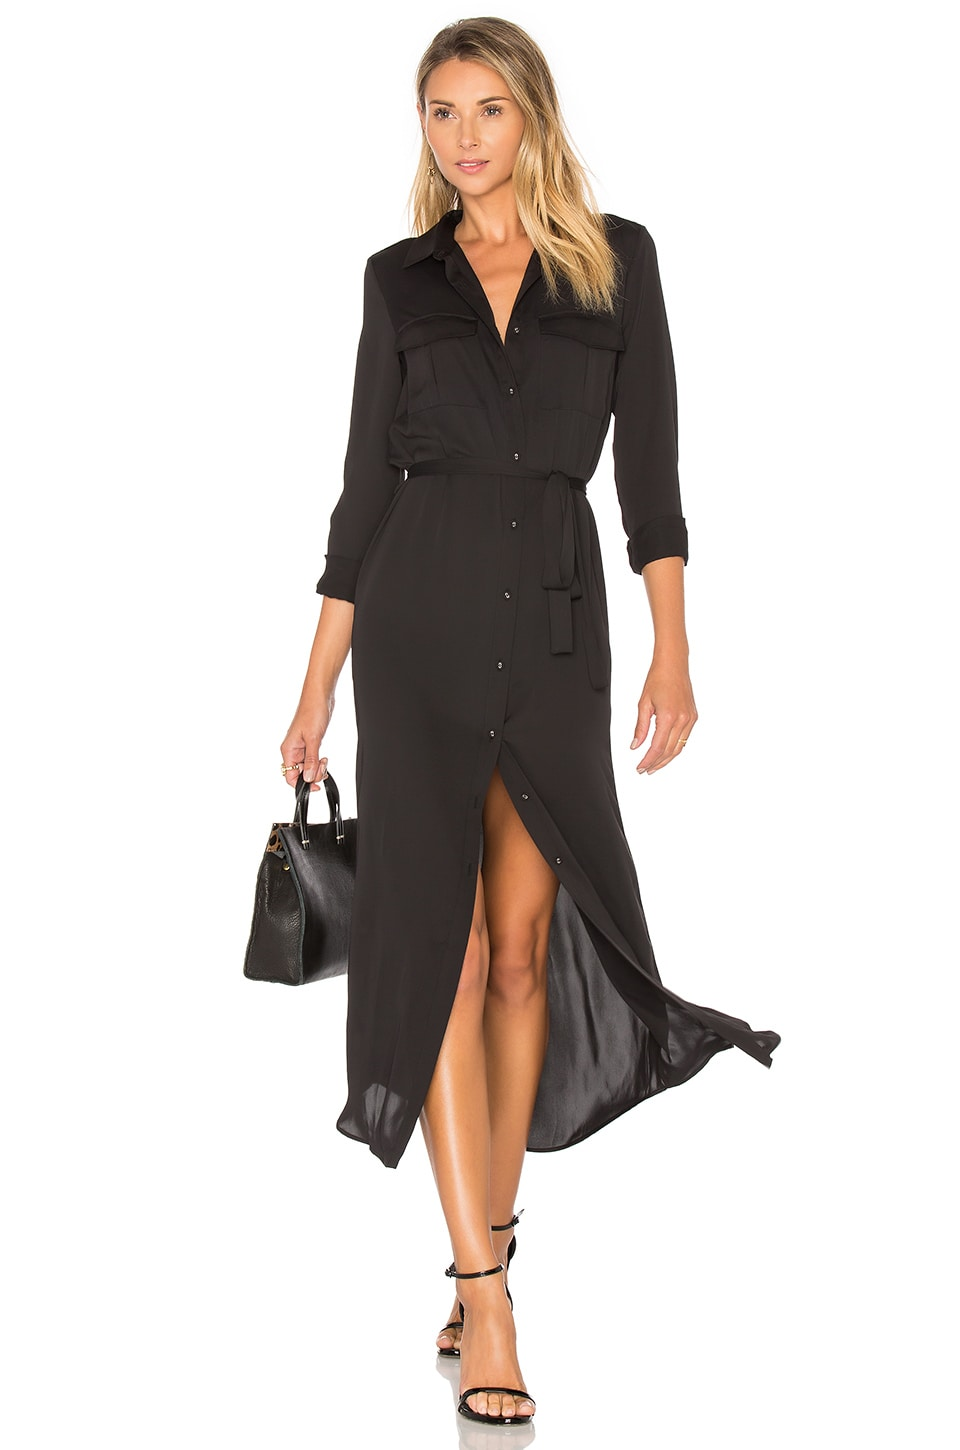 L'Academie The Long Sleeve Shirt Dress in Black